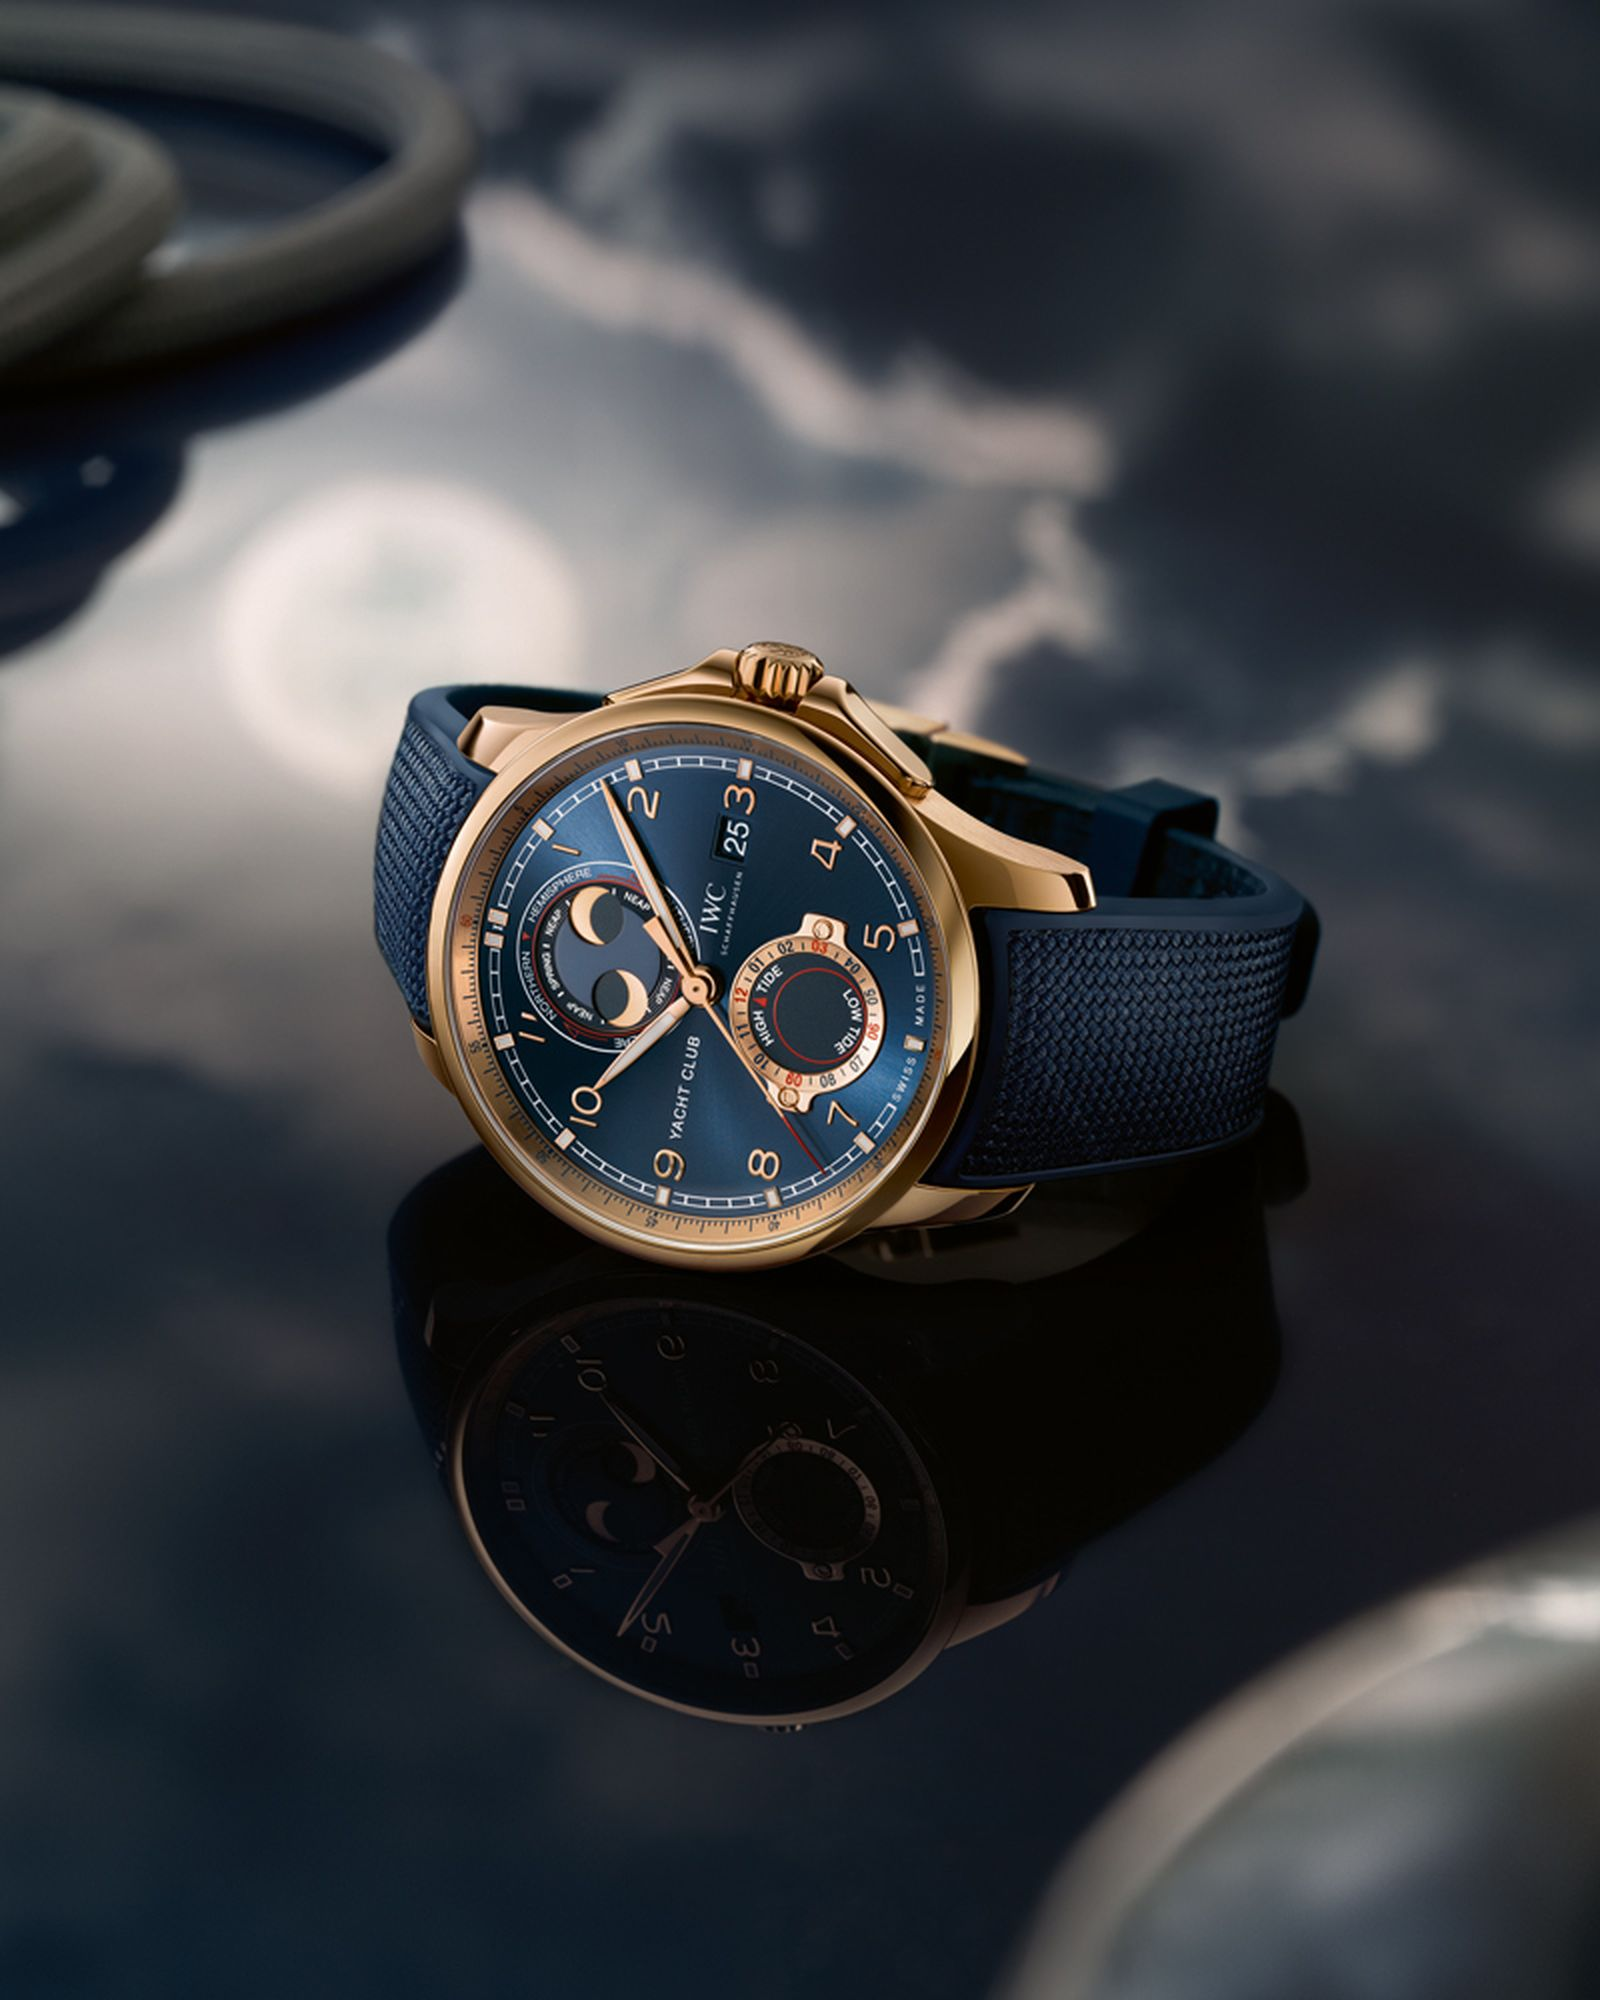 rethink-timing-four-cool-watches-watchesandwonders-com-04